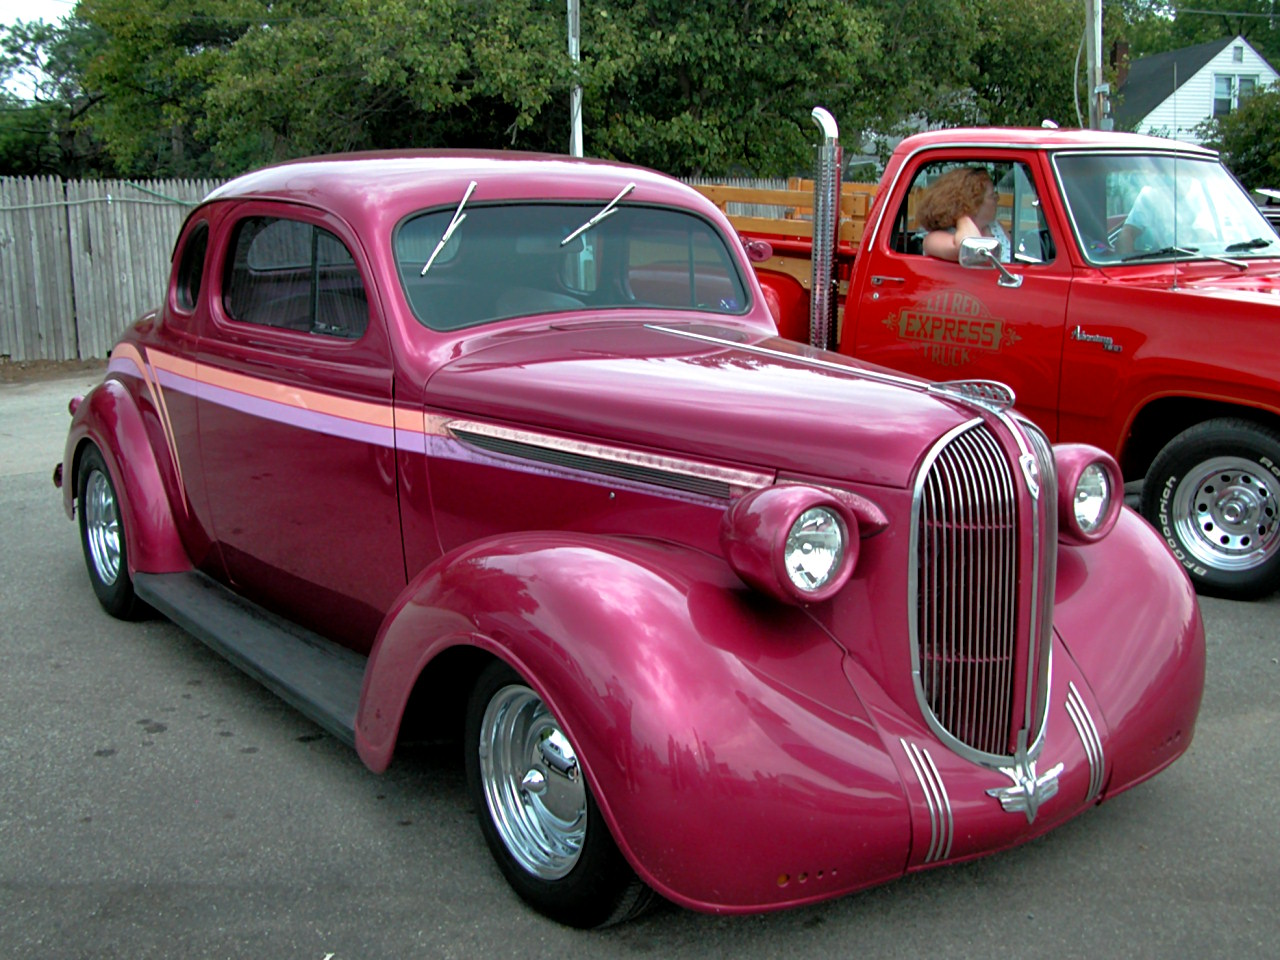 1938 Plymouth Chopped 5 Window Coupe Rose Metallic Fvr 2005 Dream Cruise N